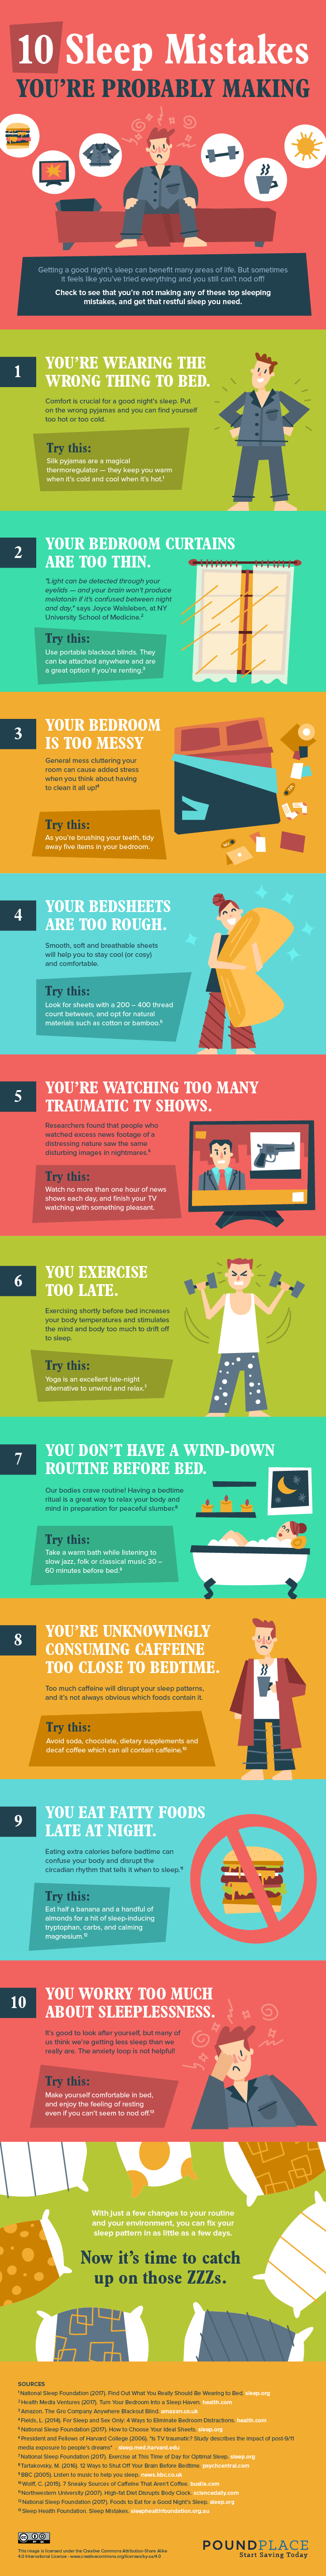 slee mistakes - infographic